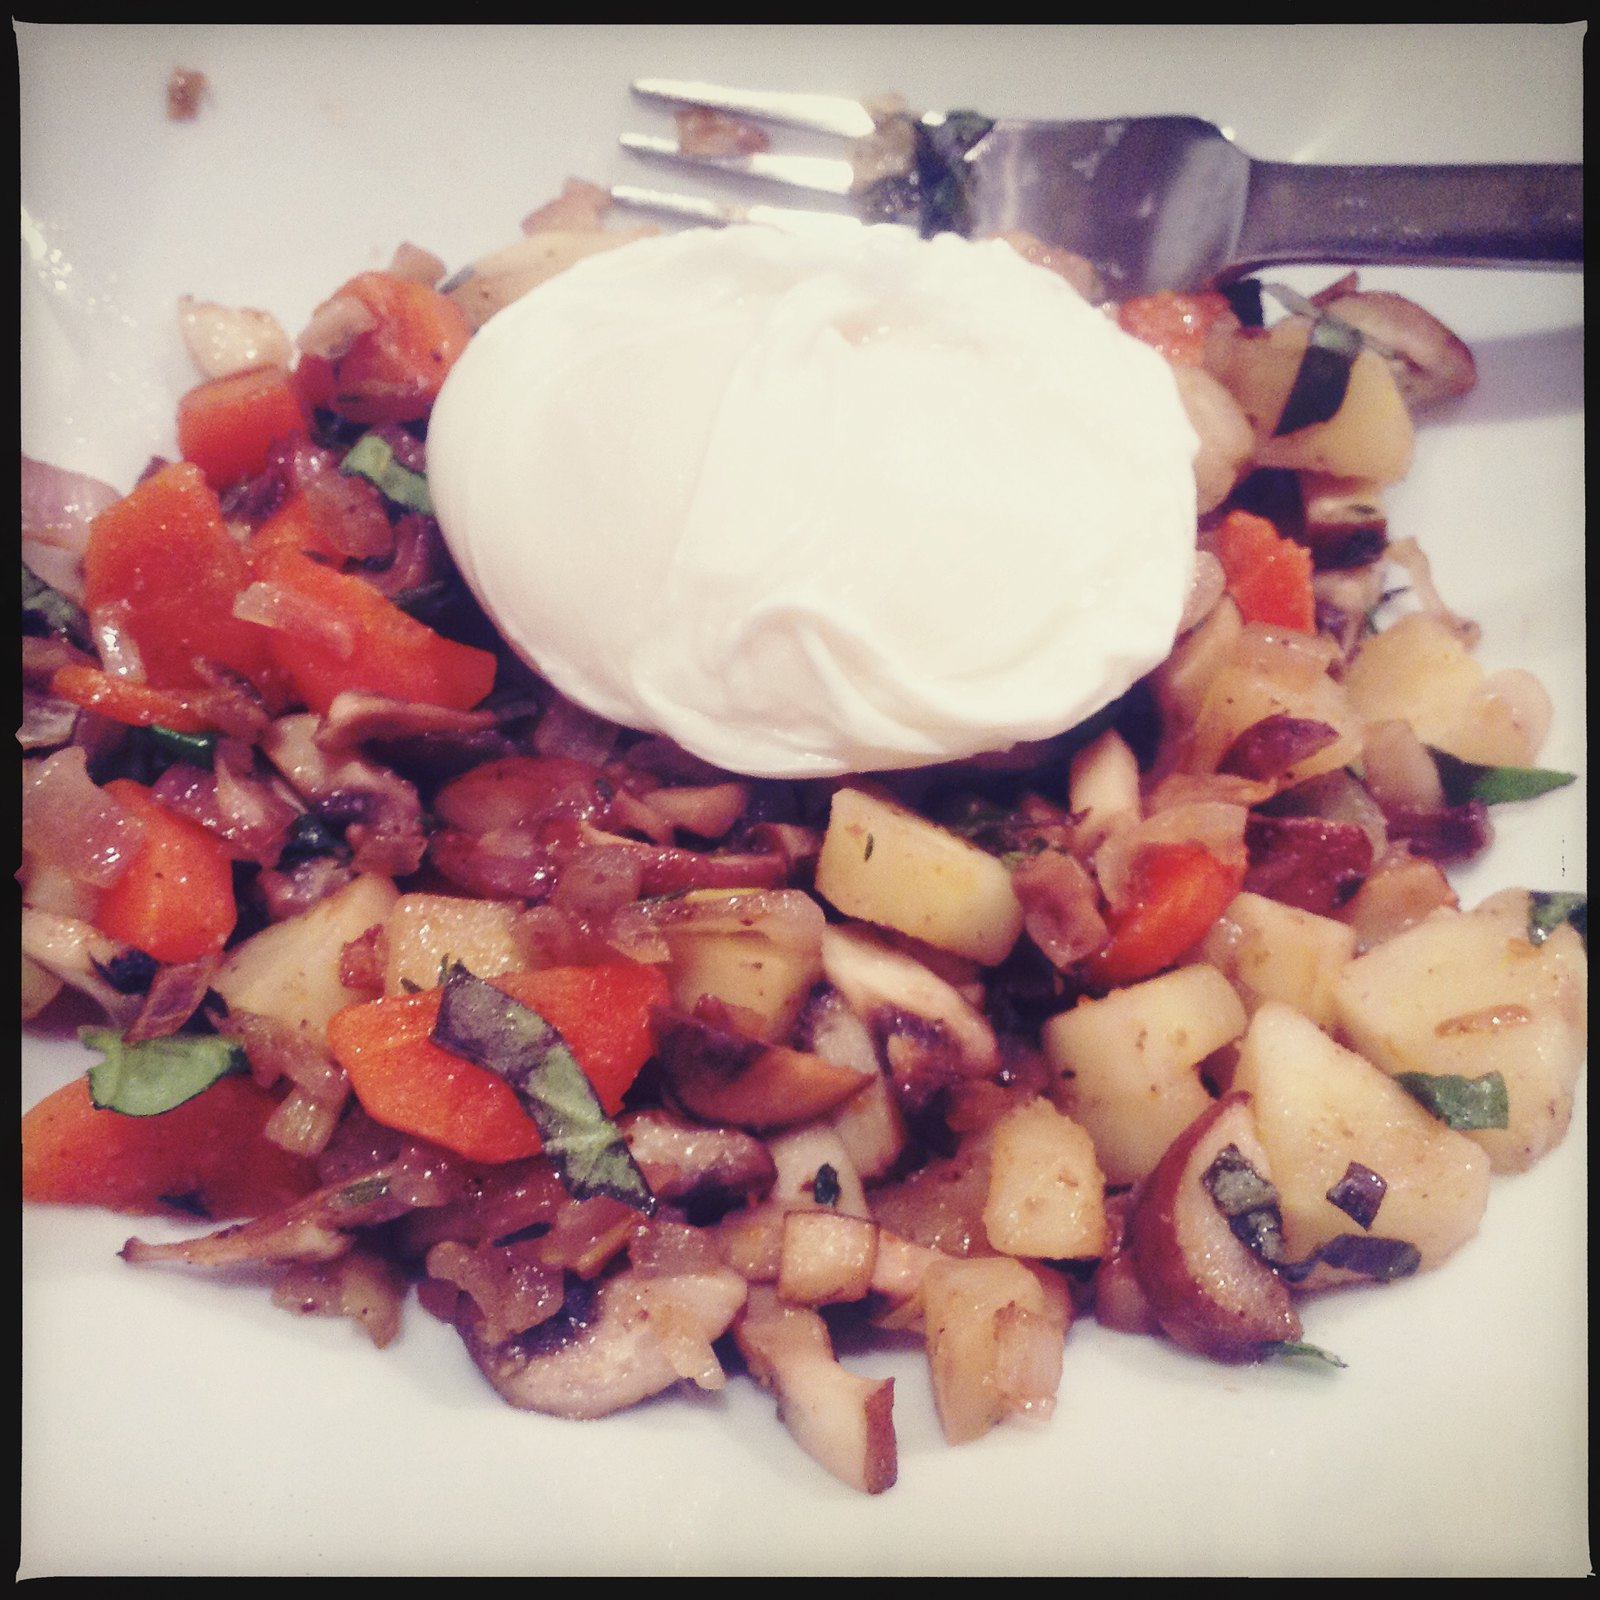 Mushroom ragout with poached egg